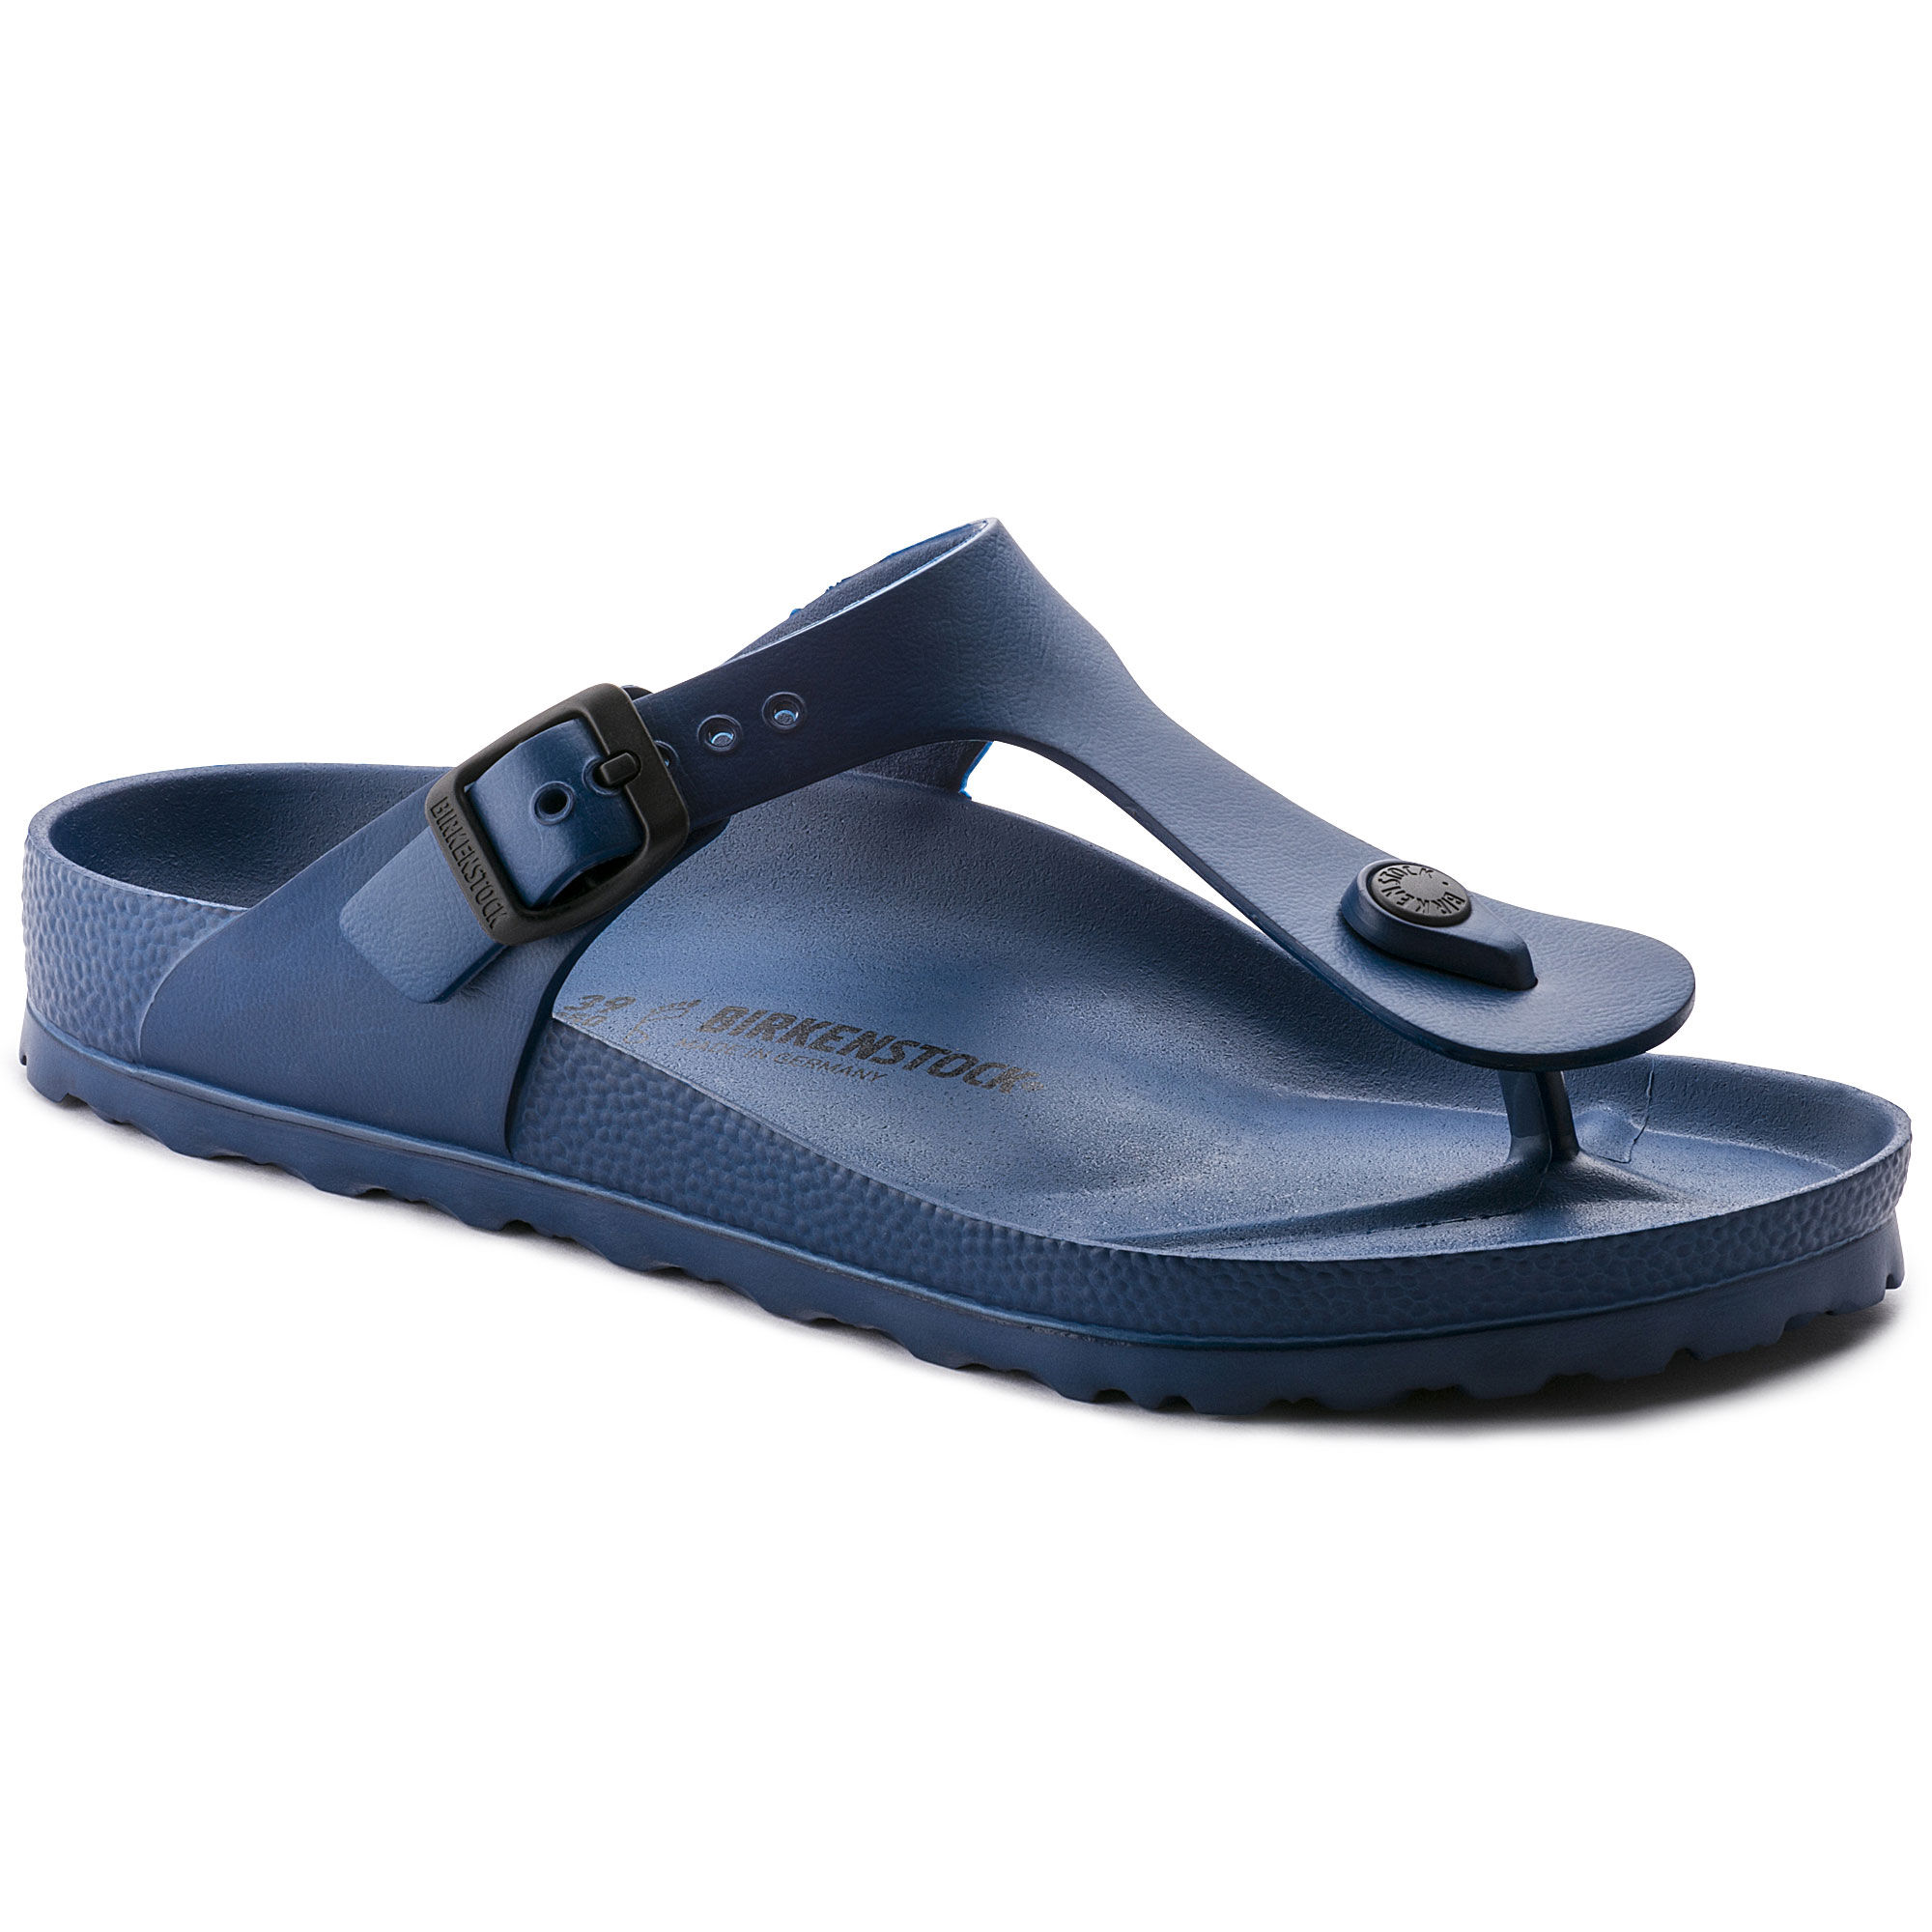 For At Online Womenbuy 8nwpo0kx Birkenstock Sandals Beach QrdosxhBtC